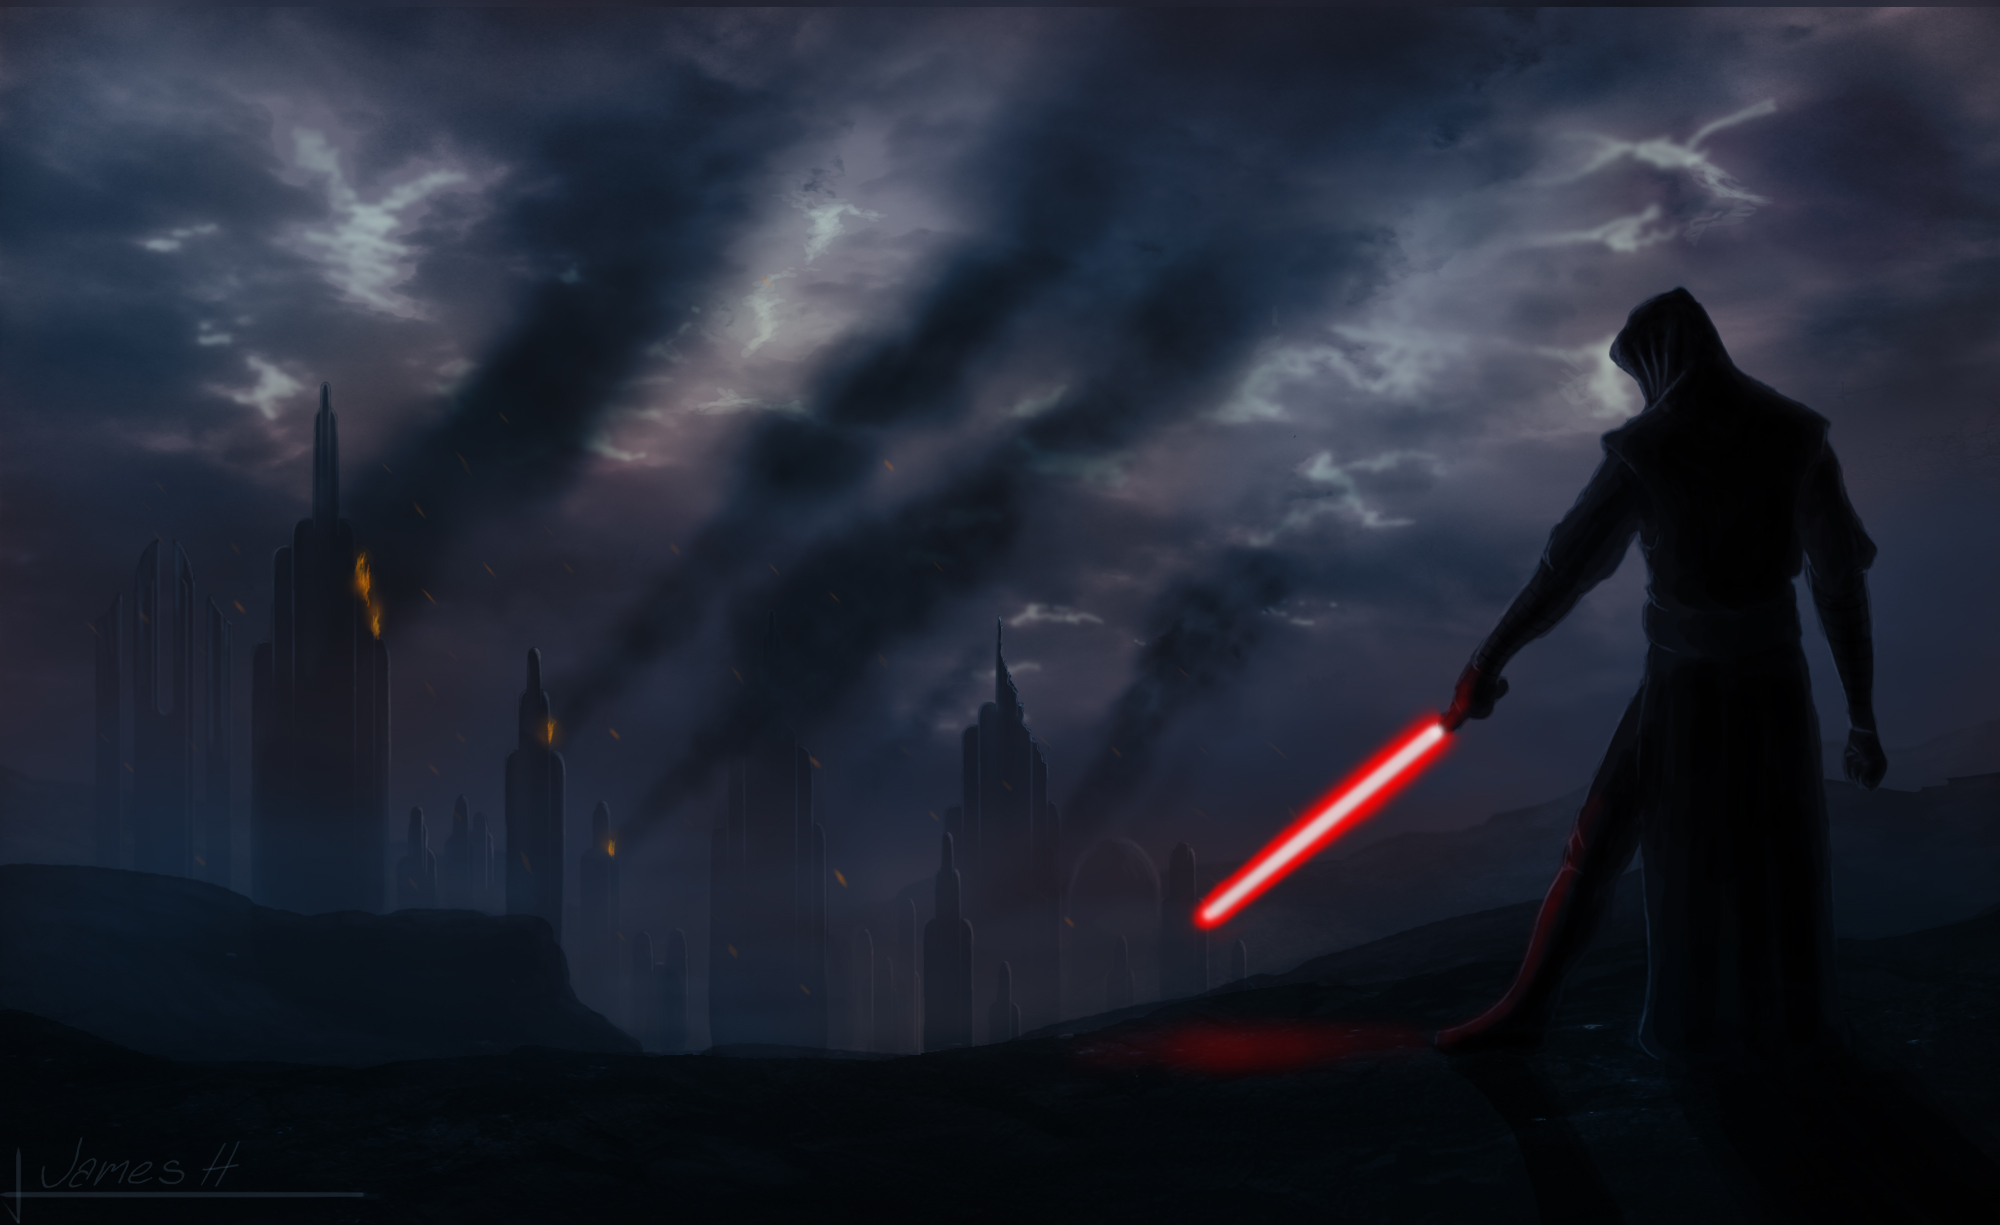 Star Wars Sith Wallpaper 1920x1080: Sith Wallpaper Themes